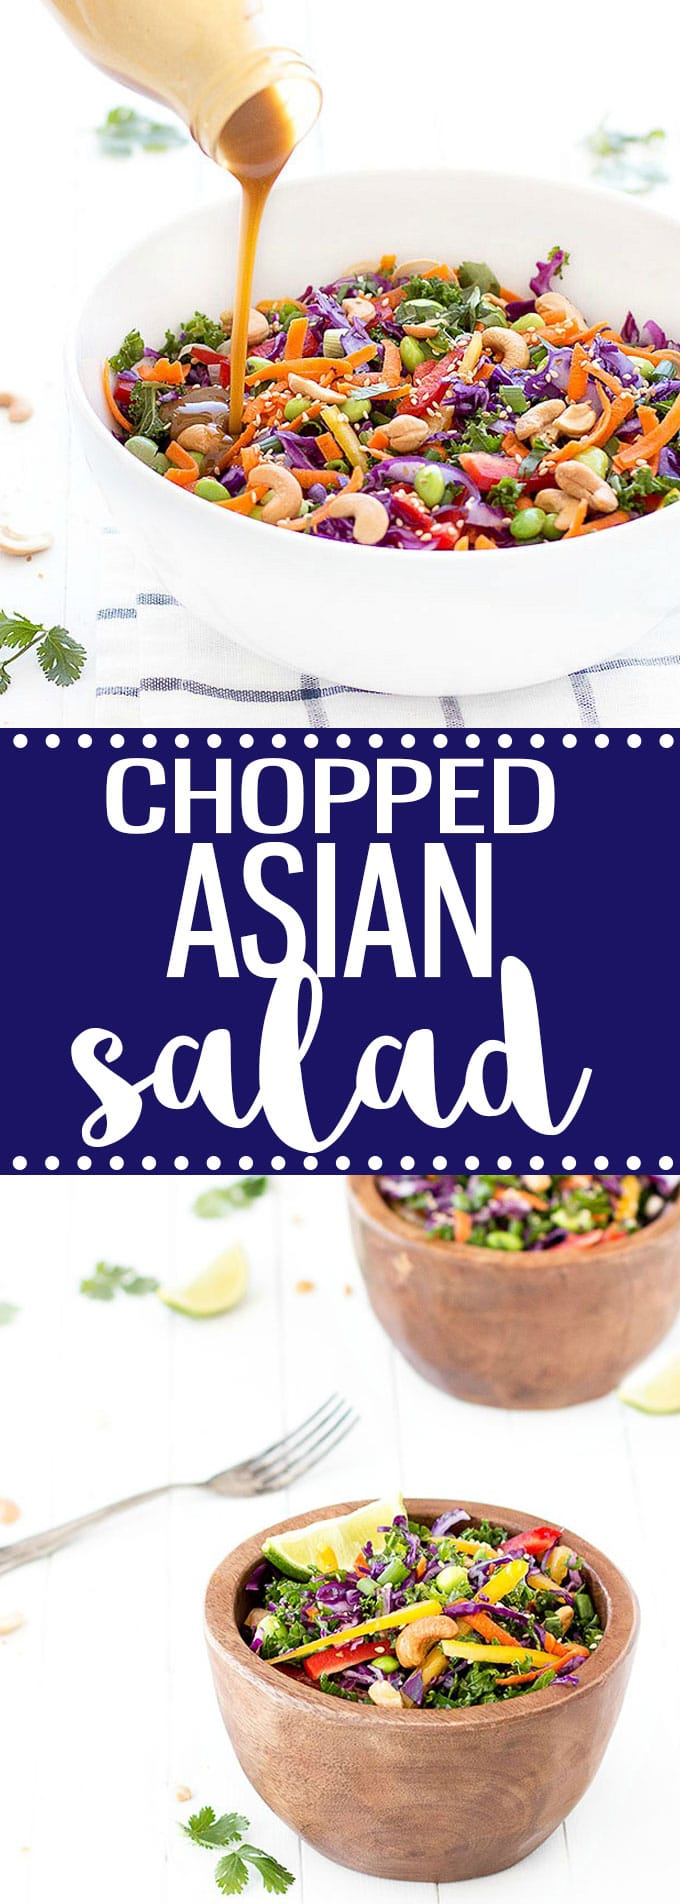 Chopped Asian Salad with Peanut Dressing - a healthy salad full of amazing colors, flavors and textures!!